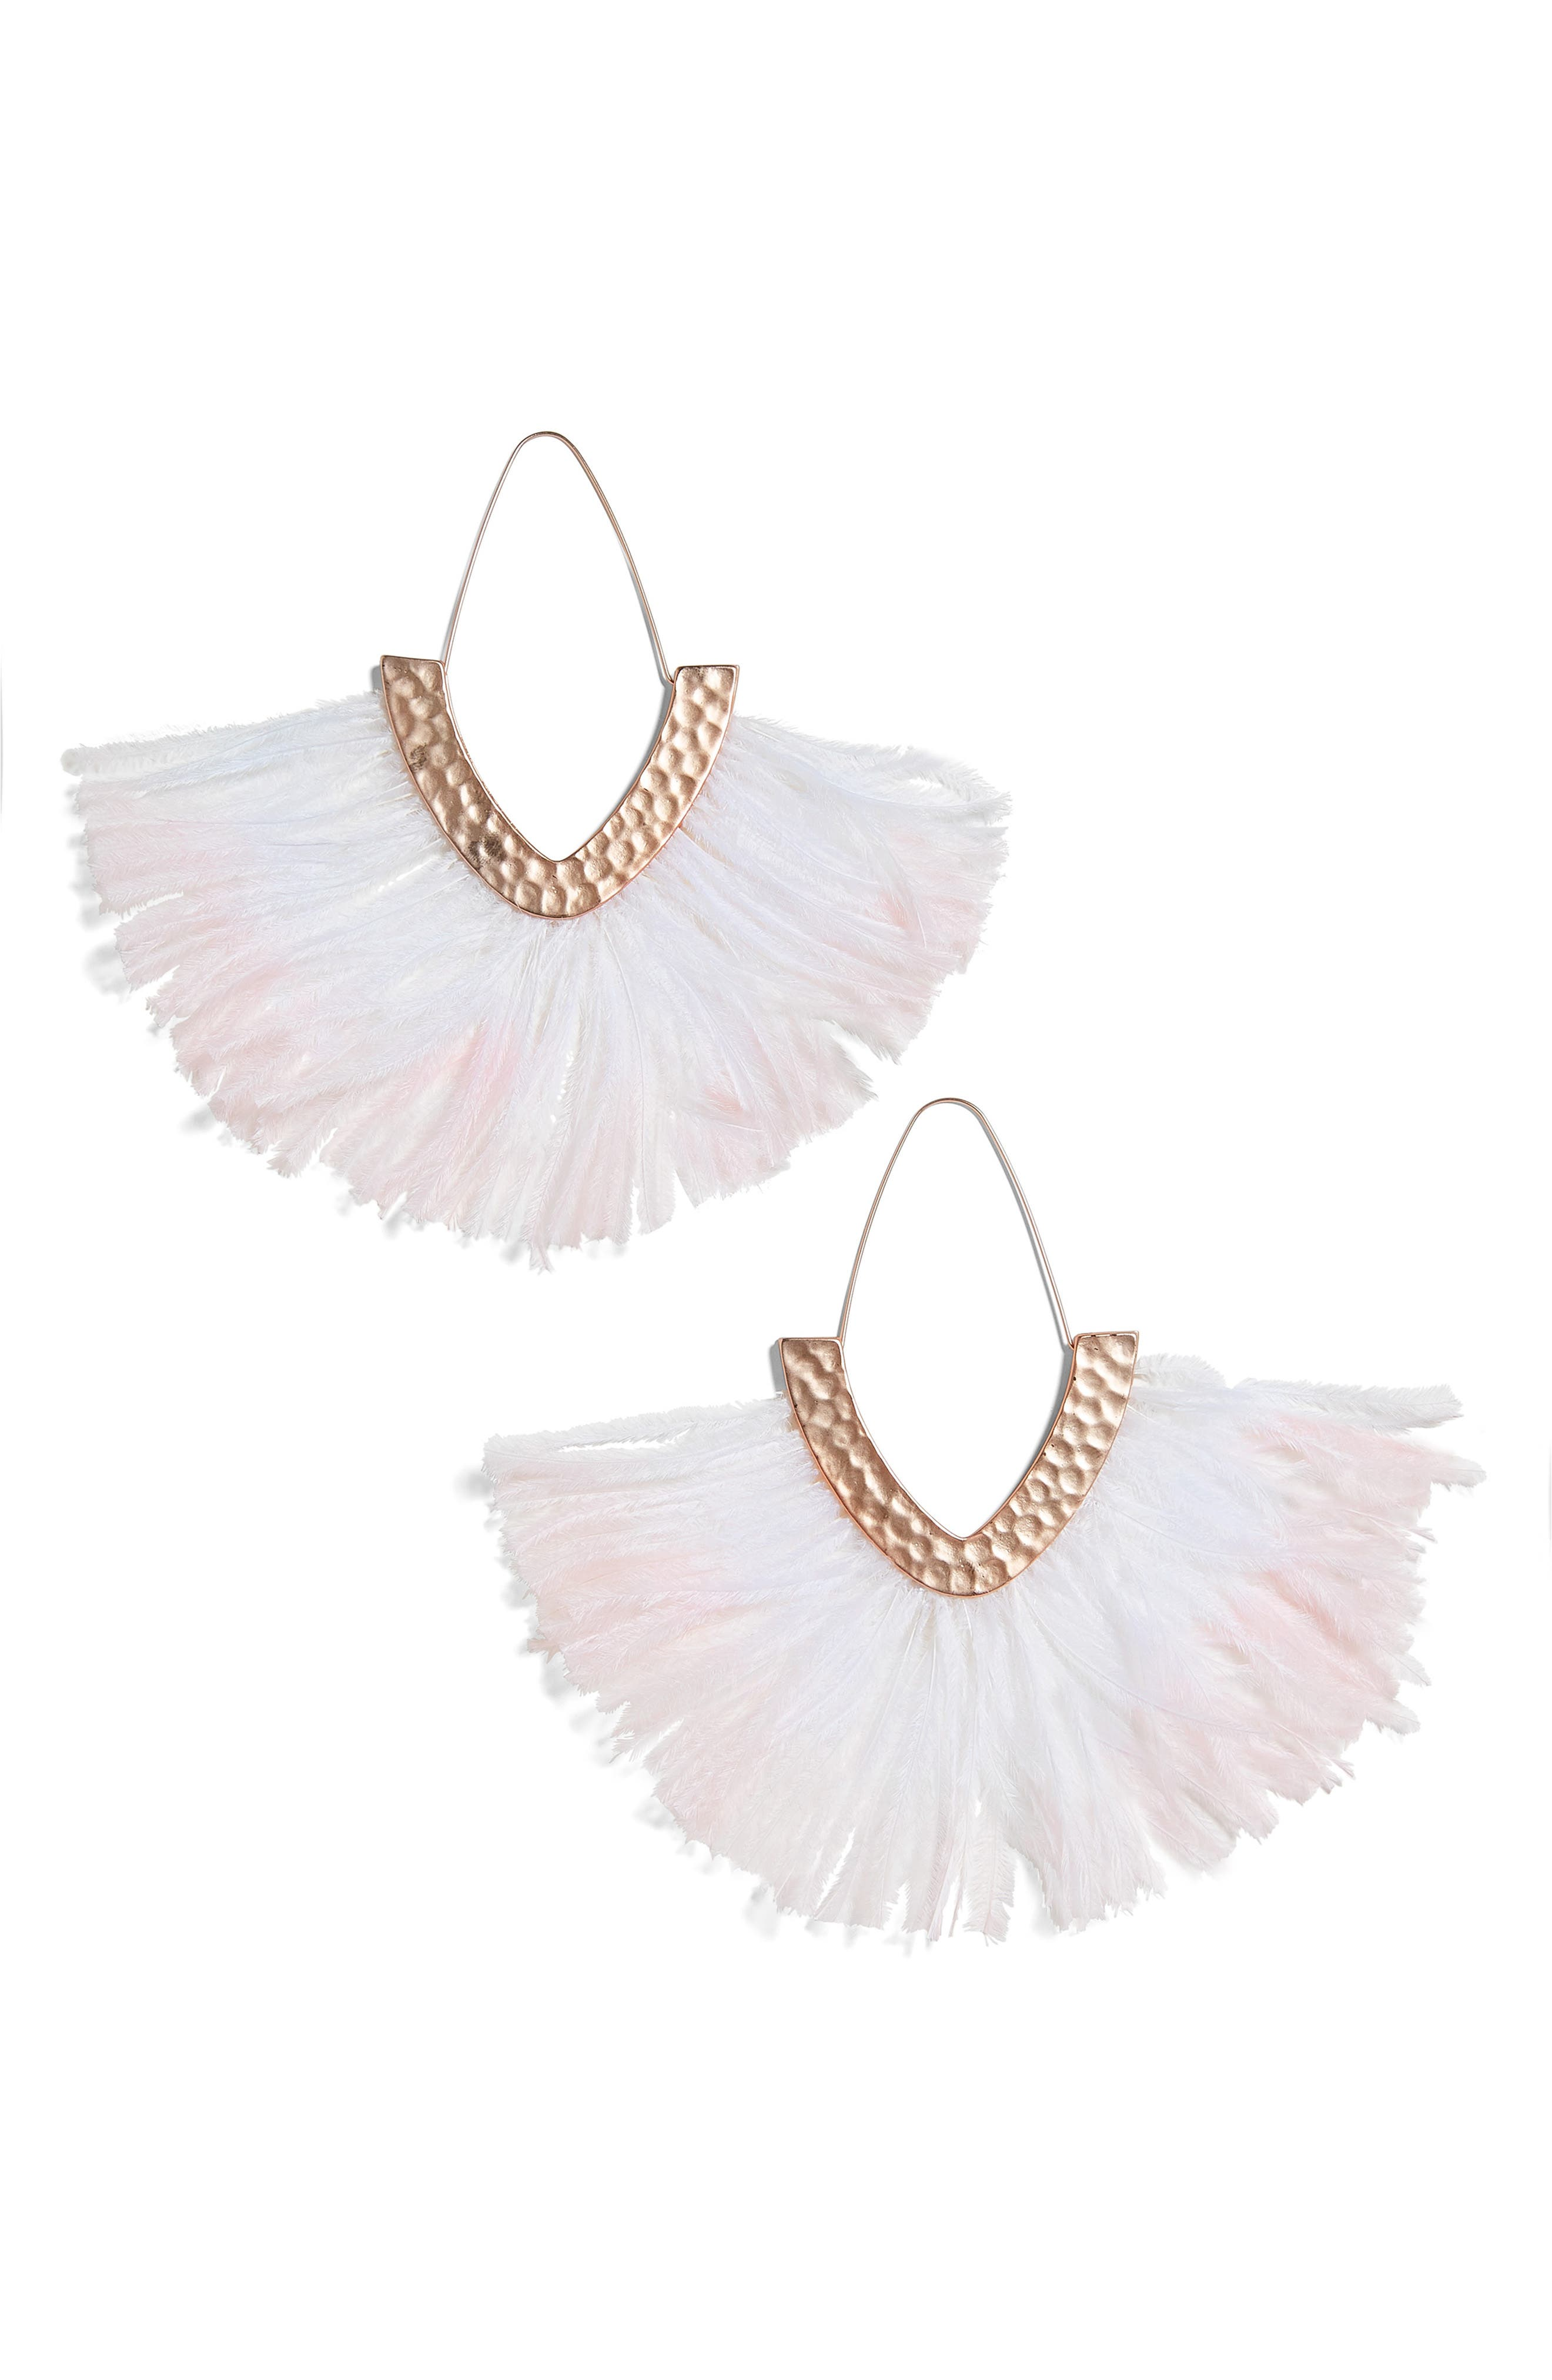 BAUBLEBAR Feather Fringe Drop Earrings, Main, color, BLUSH